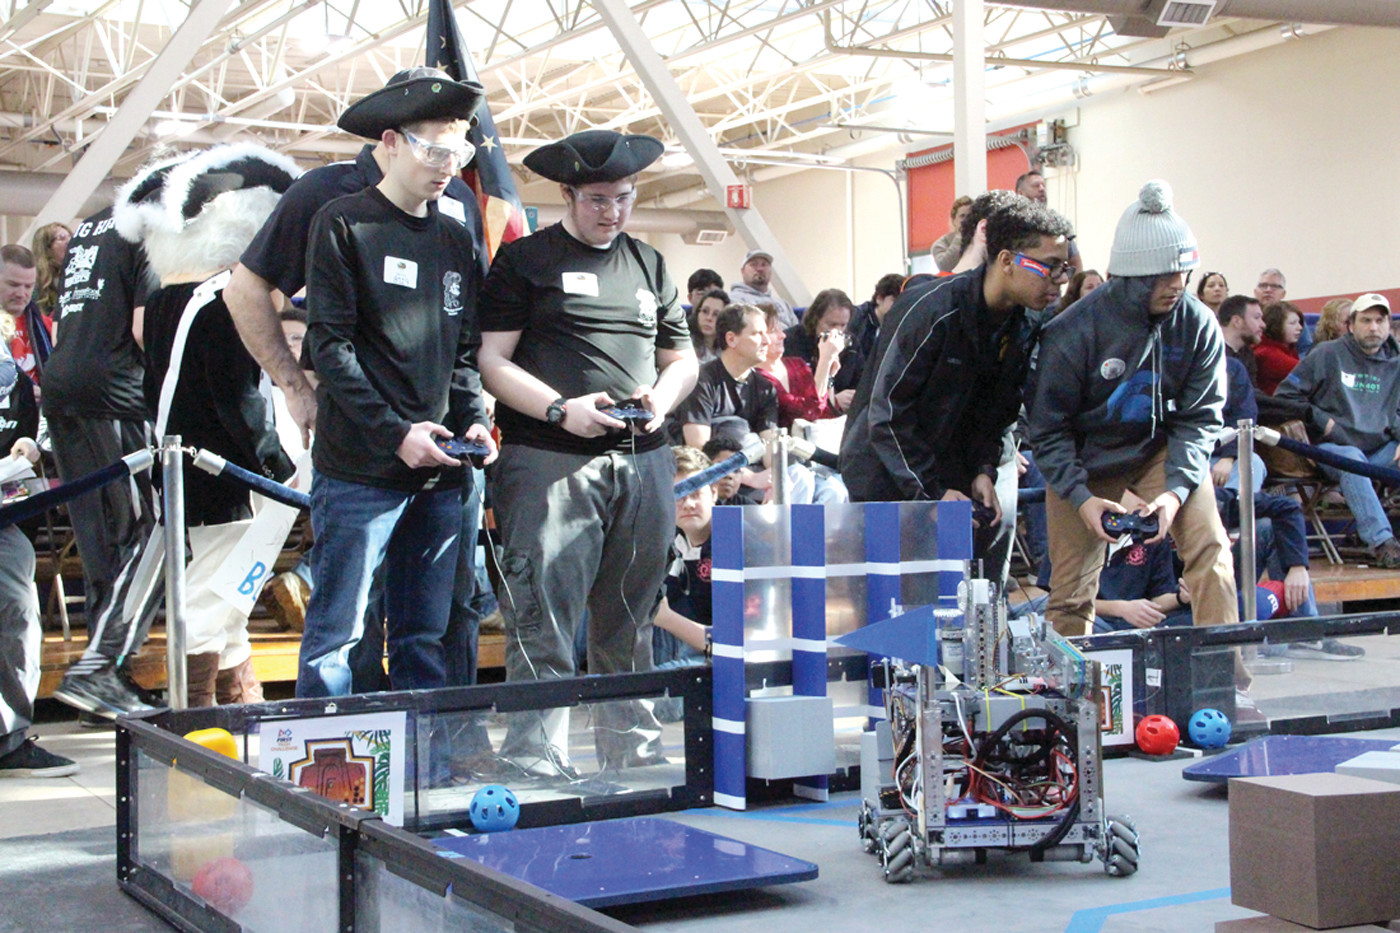 IN THE RING: Robots compete to complete a series of tasks within a time period before spectators and judges.